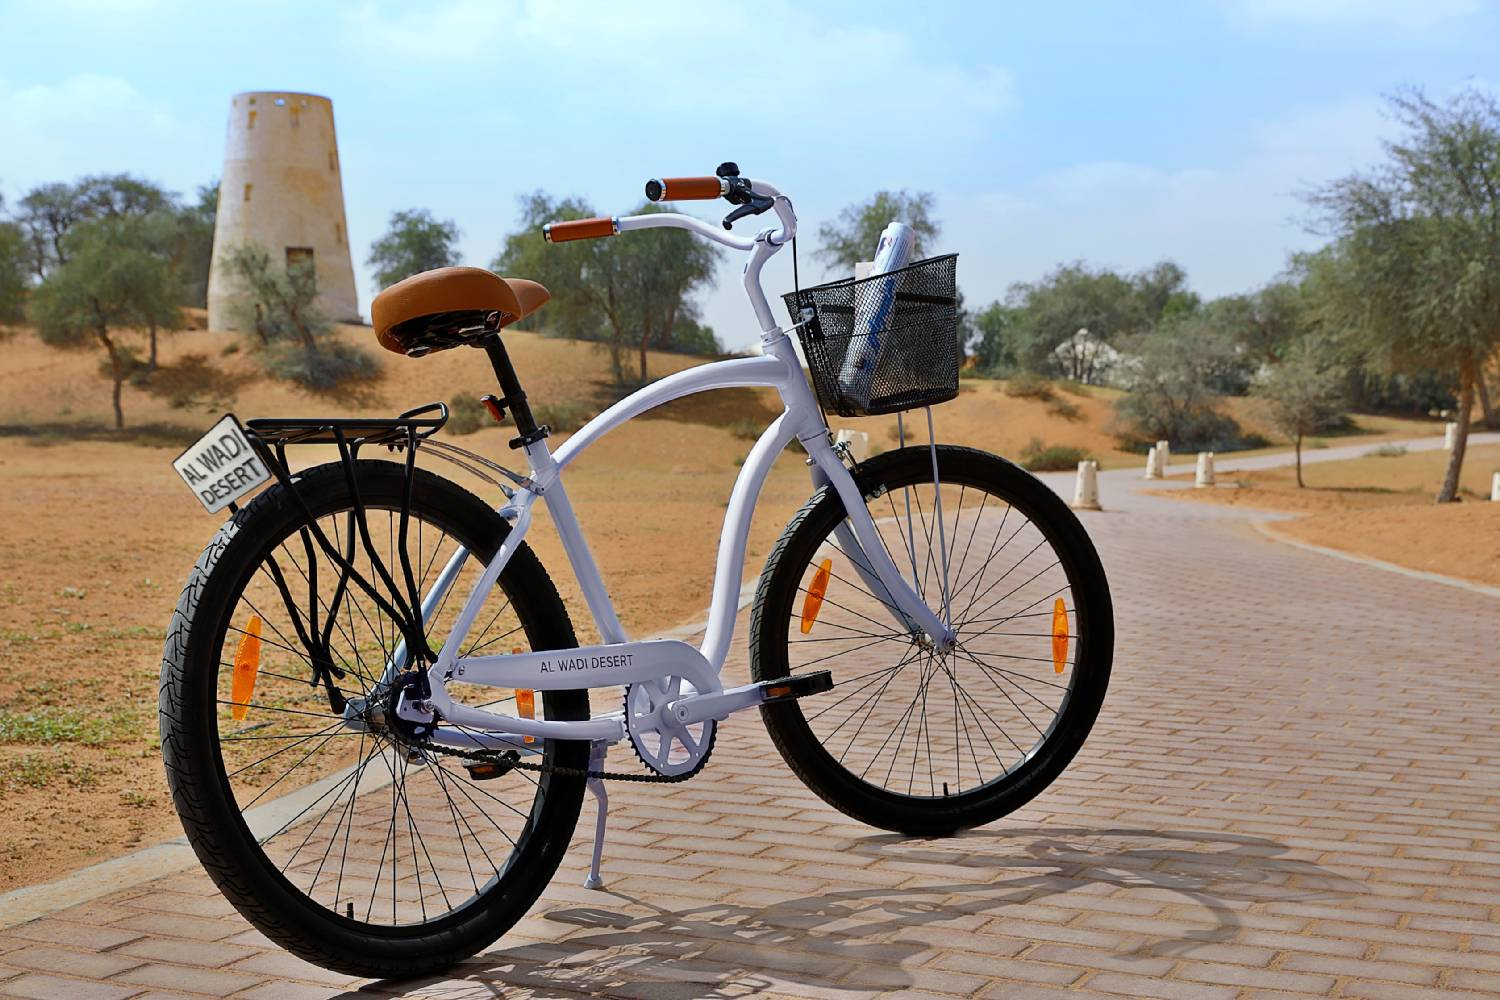 Foto: The Ritz-Carlton Ras Al Khaimah, Al Wadi Desert - Bike